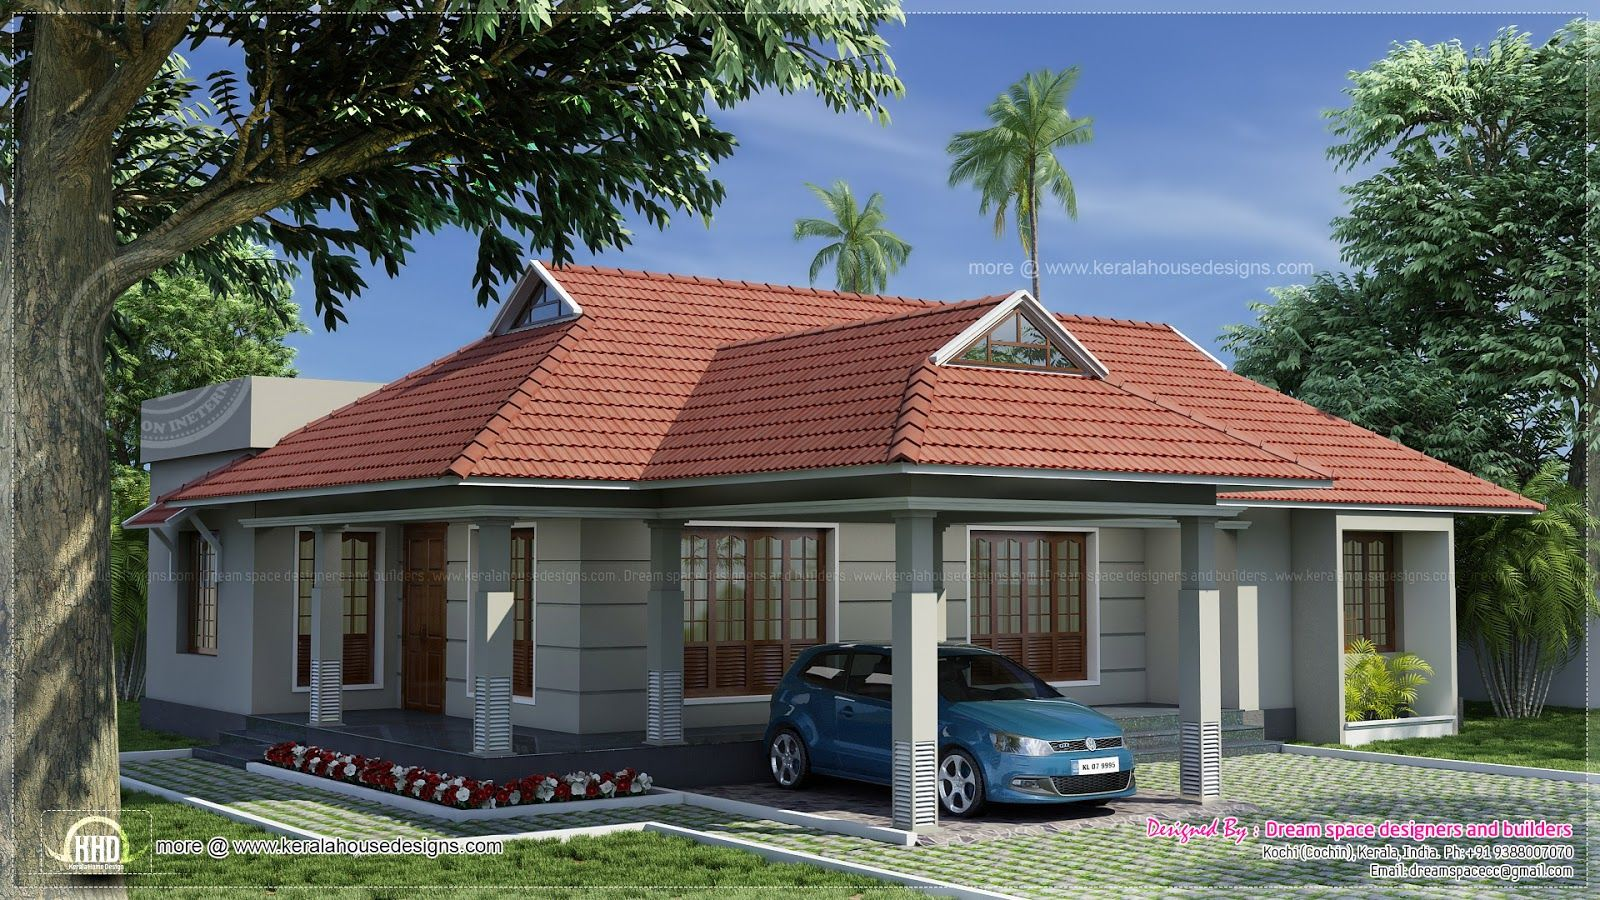 2015 05 01 Archive Likewise 1 Story Villa Plans And